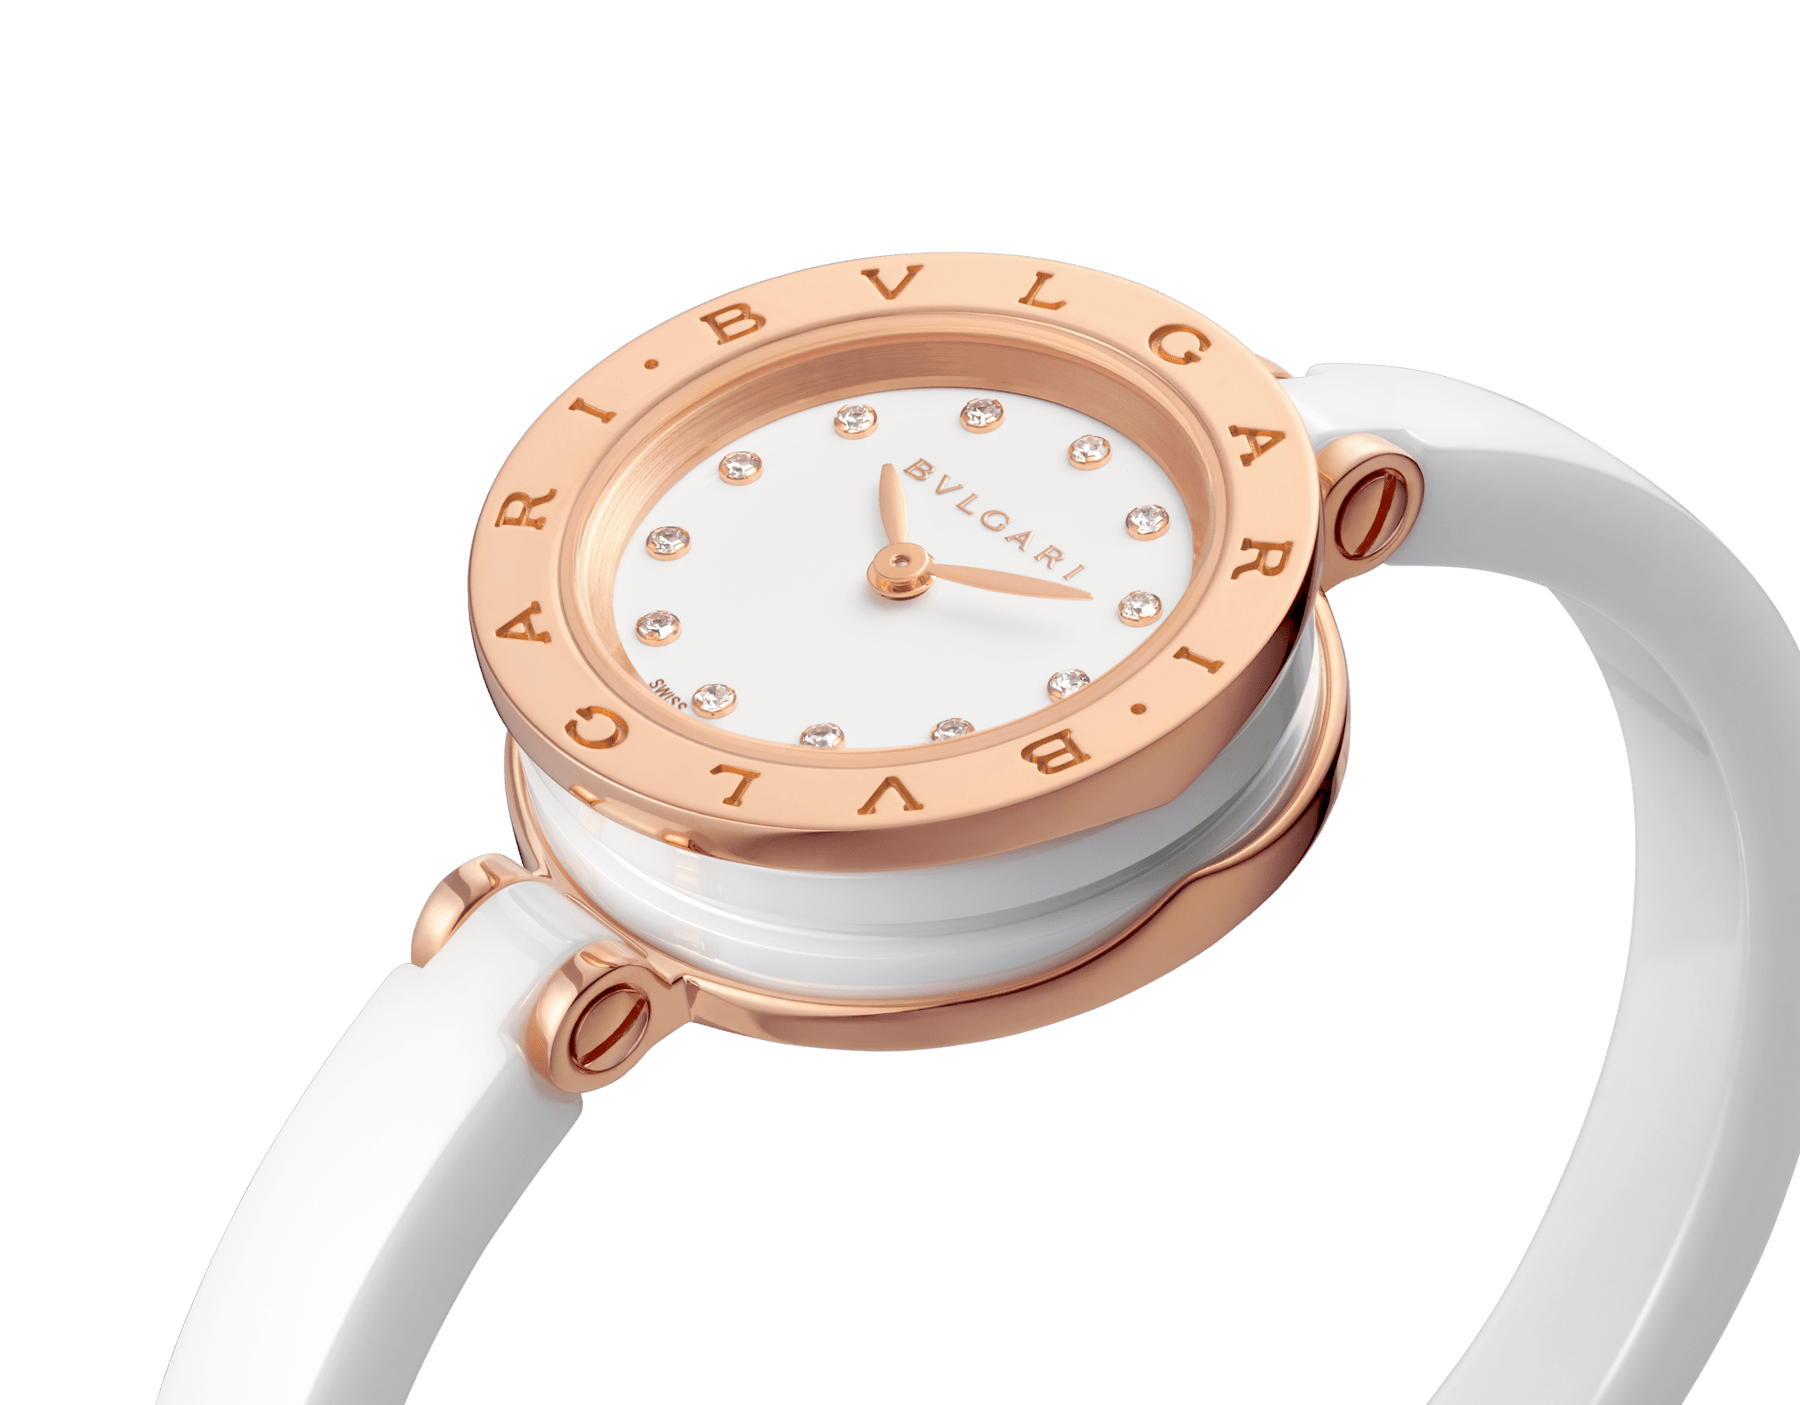 B.zero1 watch with 18 kt rose gold and white ceramic case, white lacquered dial set diamond indexes, white ceramic bangle and 18 kt rose gold clasp. B01watch-white-white-dial3 image 2